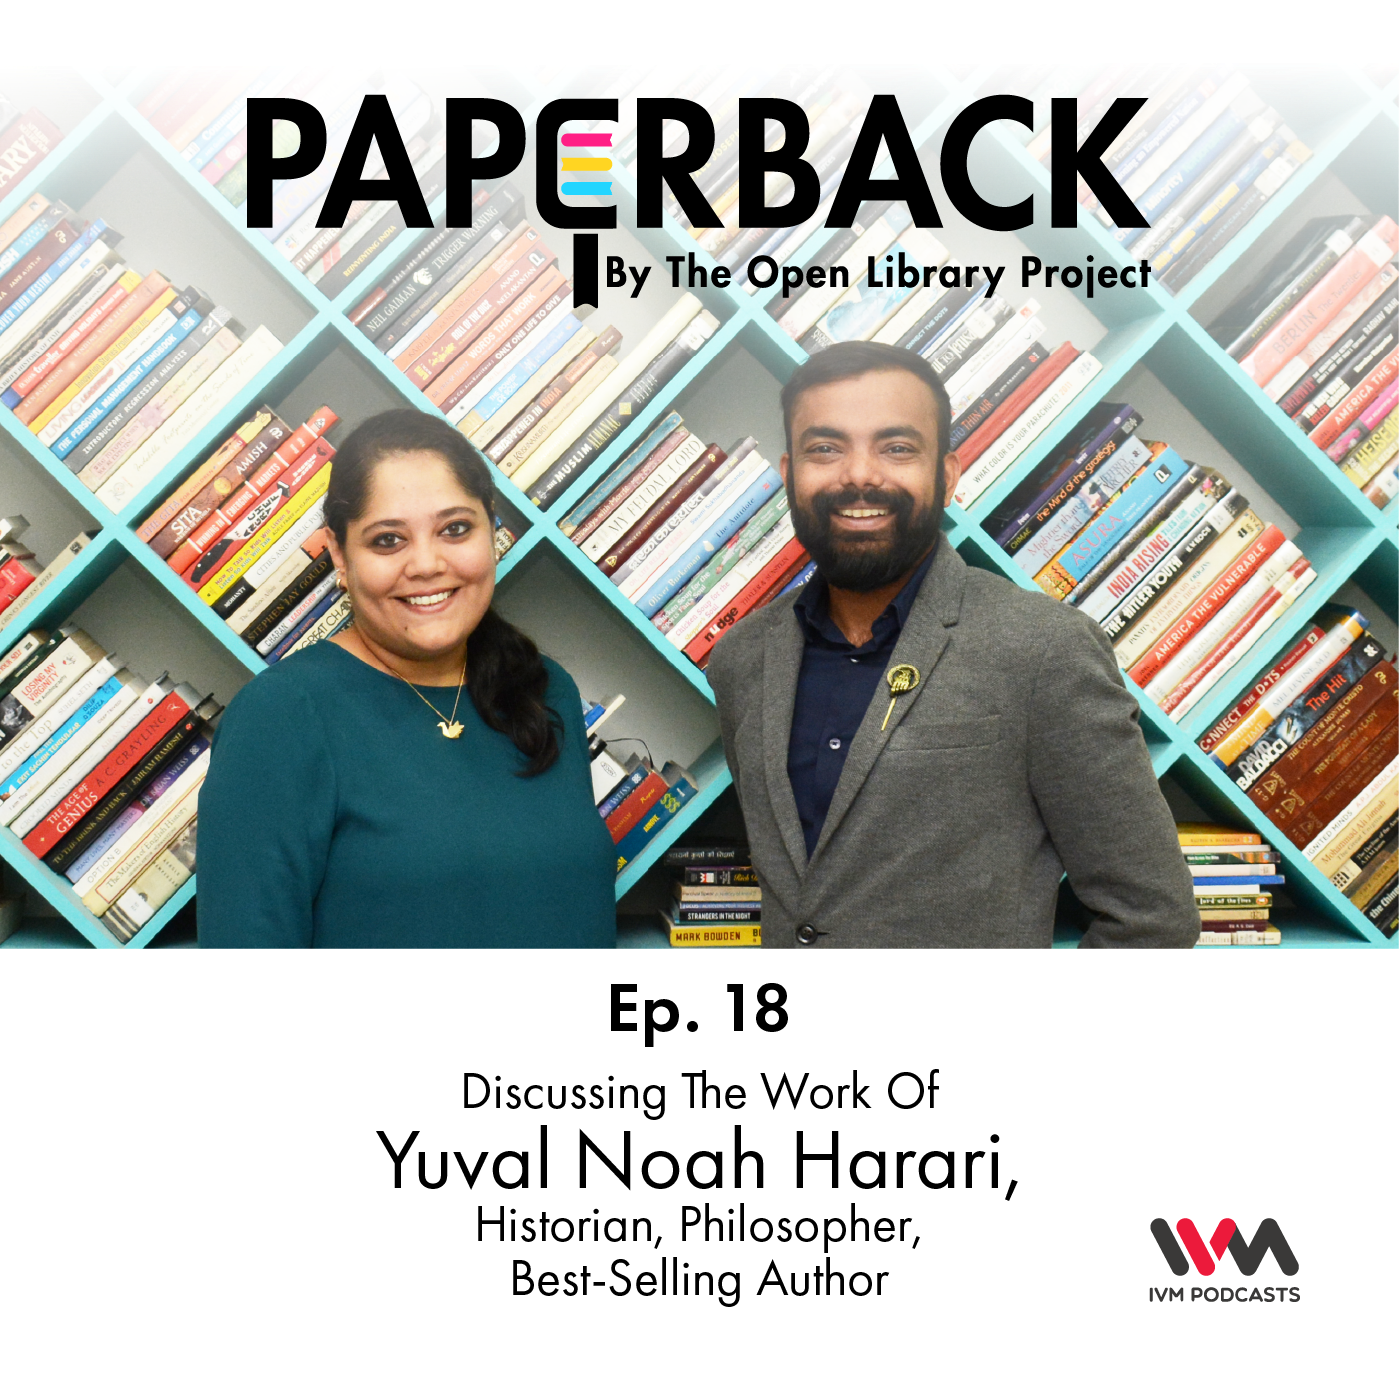 Ep. 18: Discussing The Work Of Yuval Noah Harari